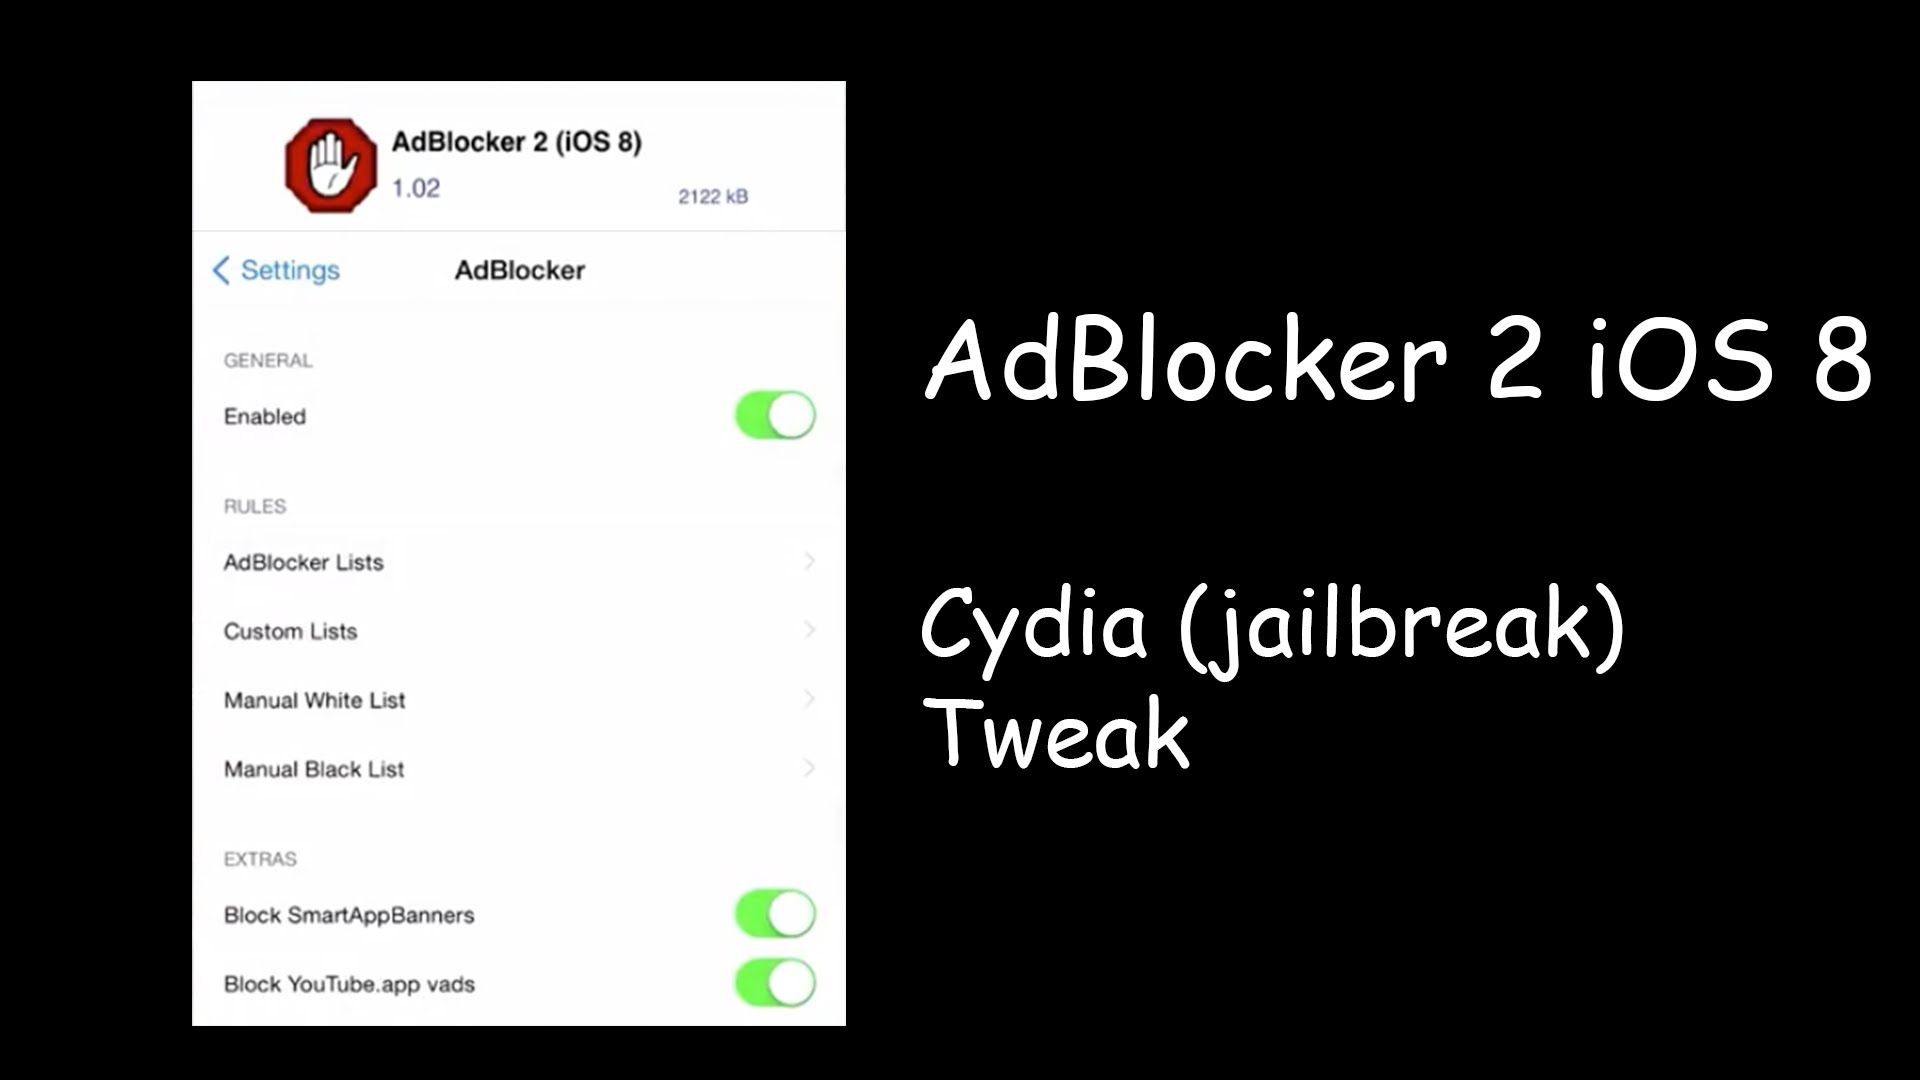 AdBlocker 2: Block image based ads in Safari and other apps